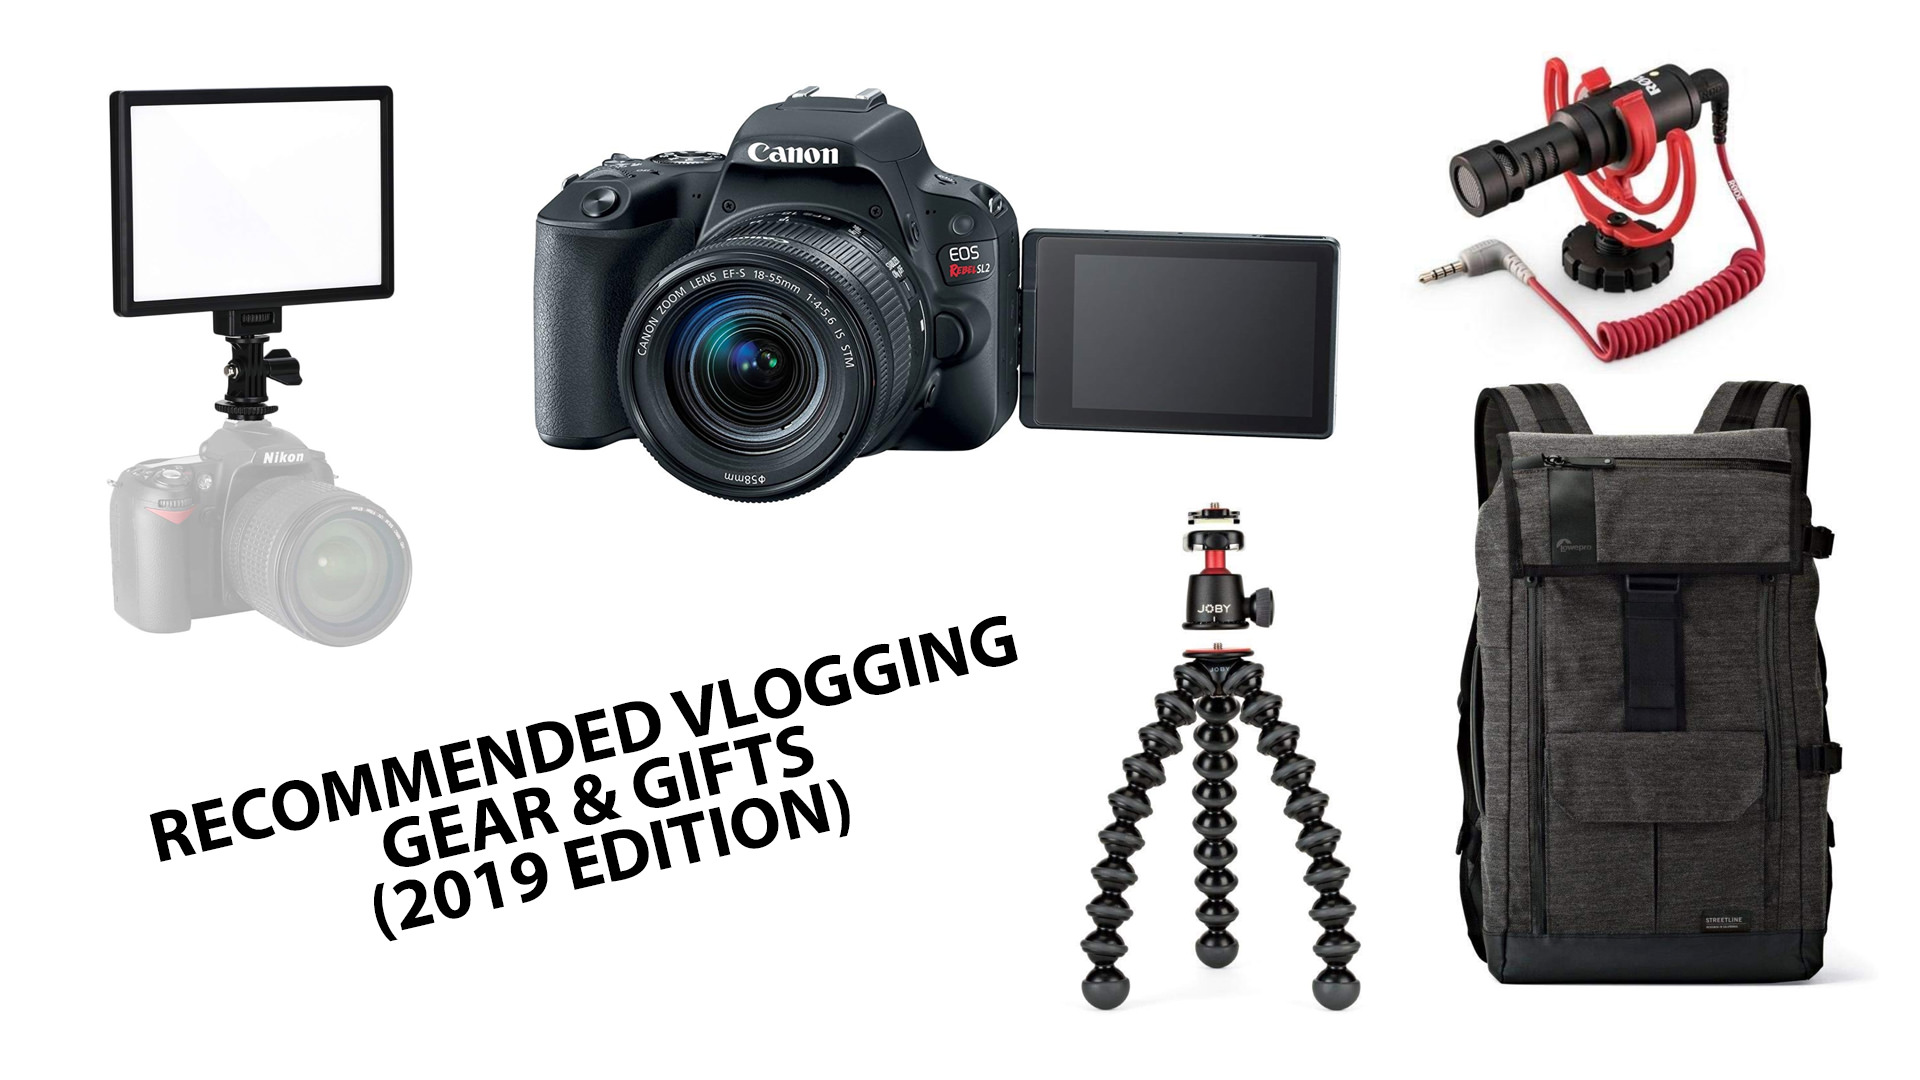 Recommended Vlogging Camera Gear - Not So Ancient Chinese